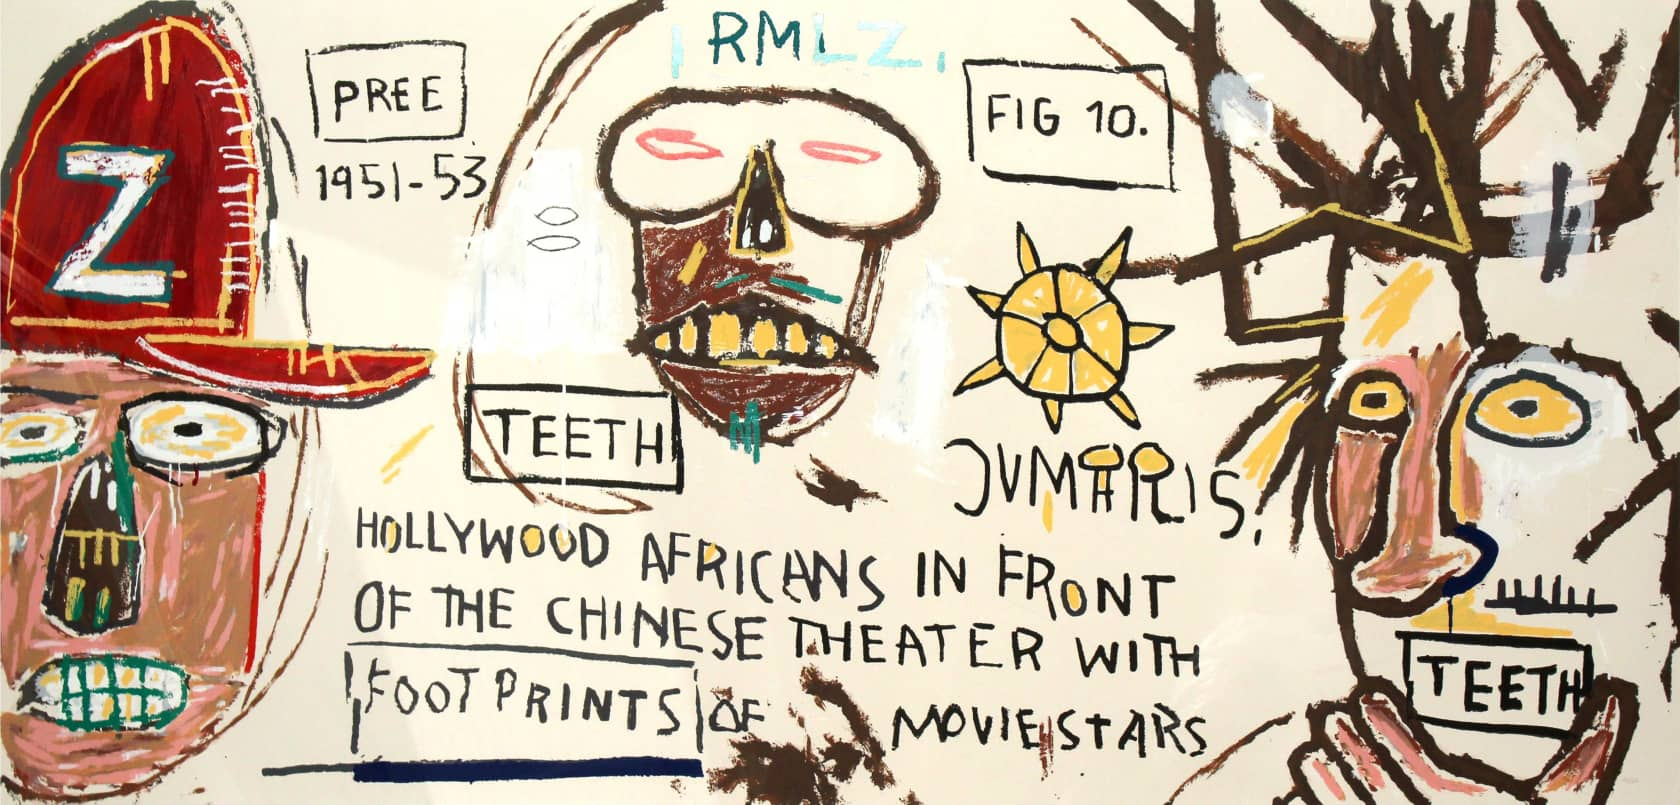 Jean-Michel Basquiat, Hollywood Africans, 1983/2015